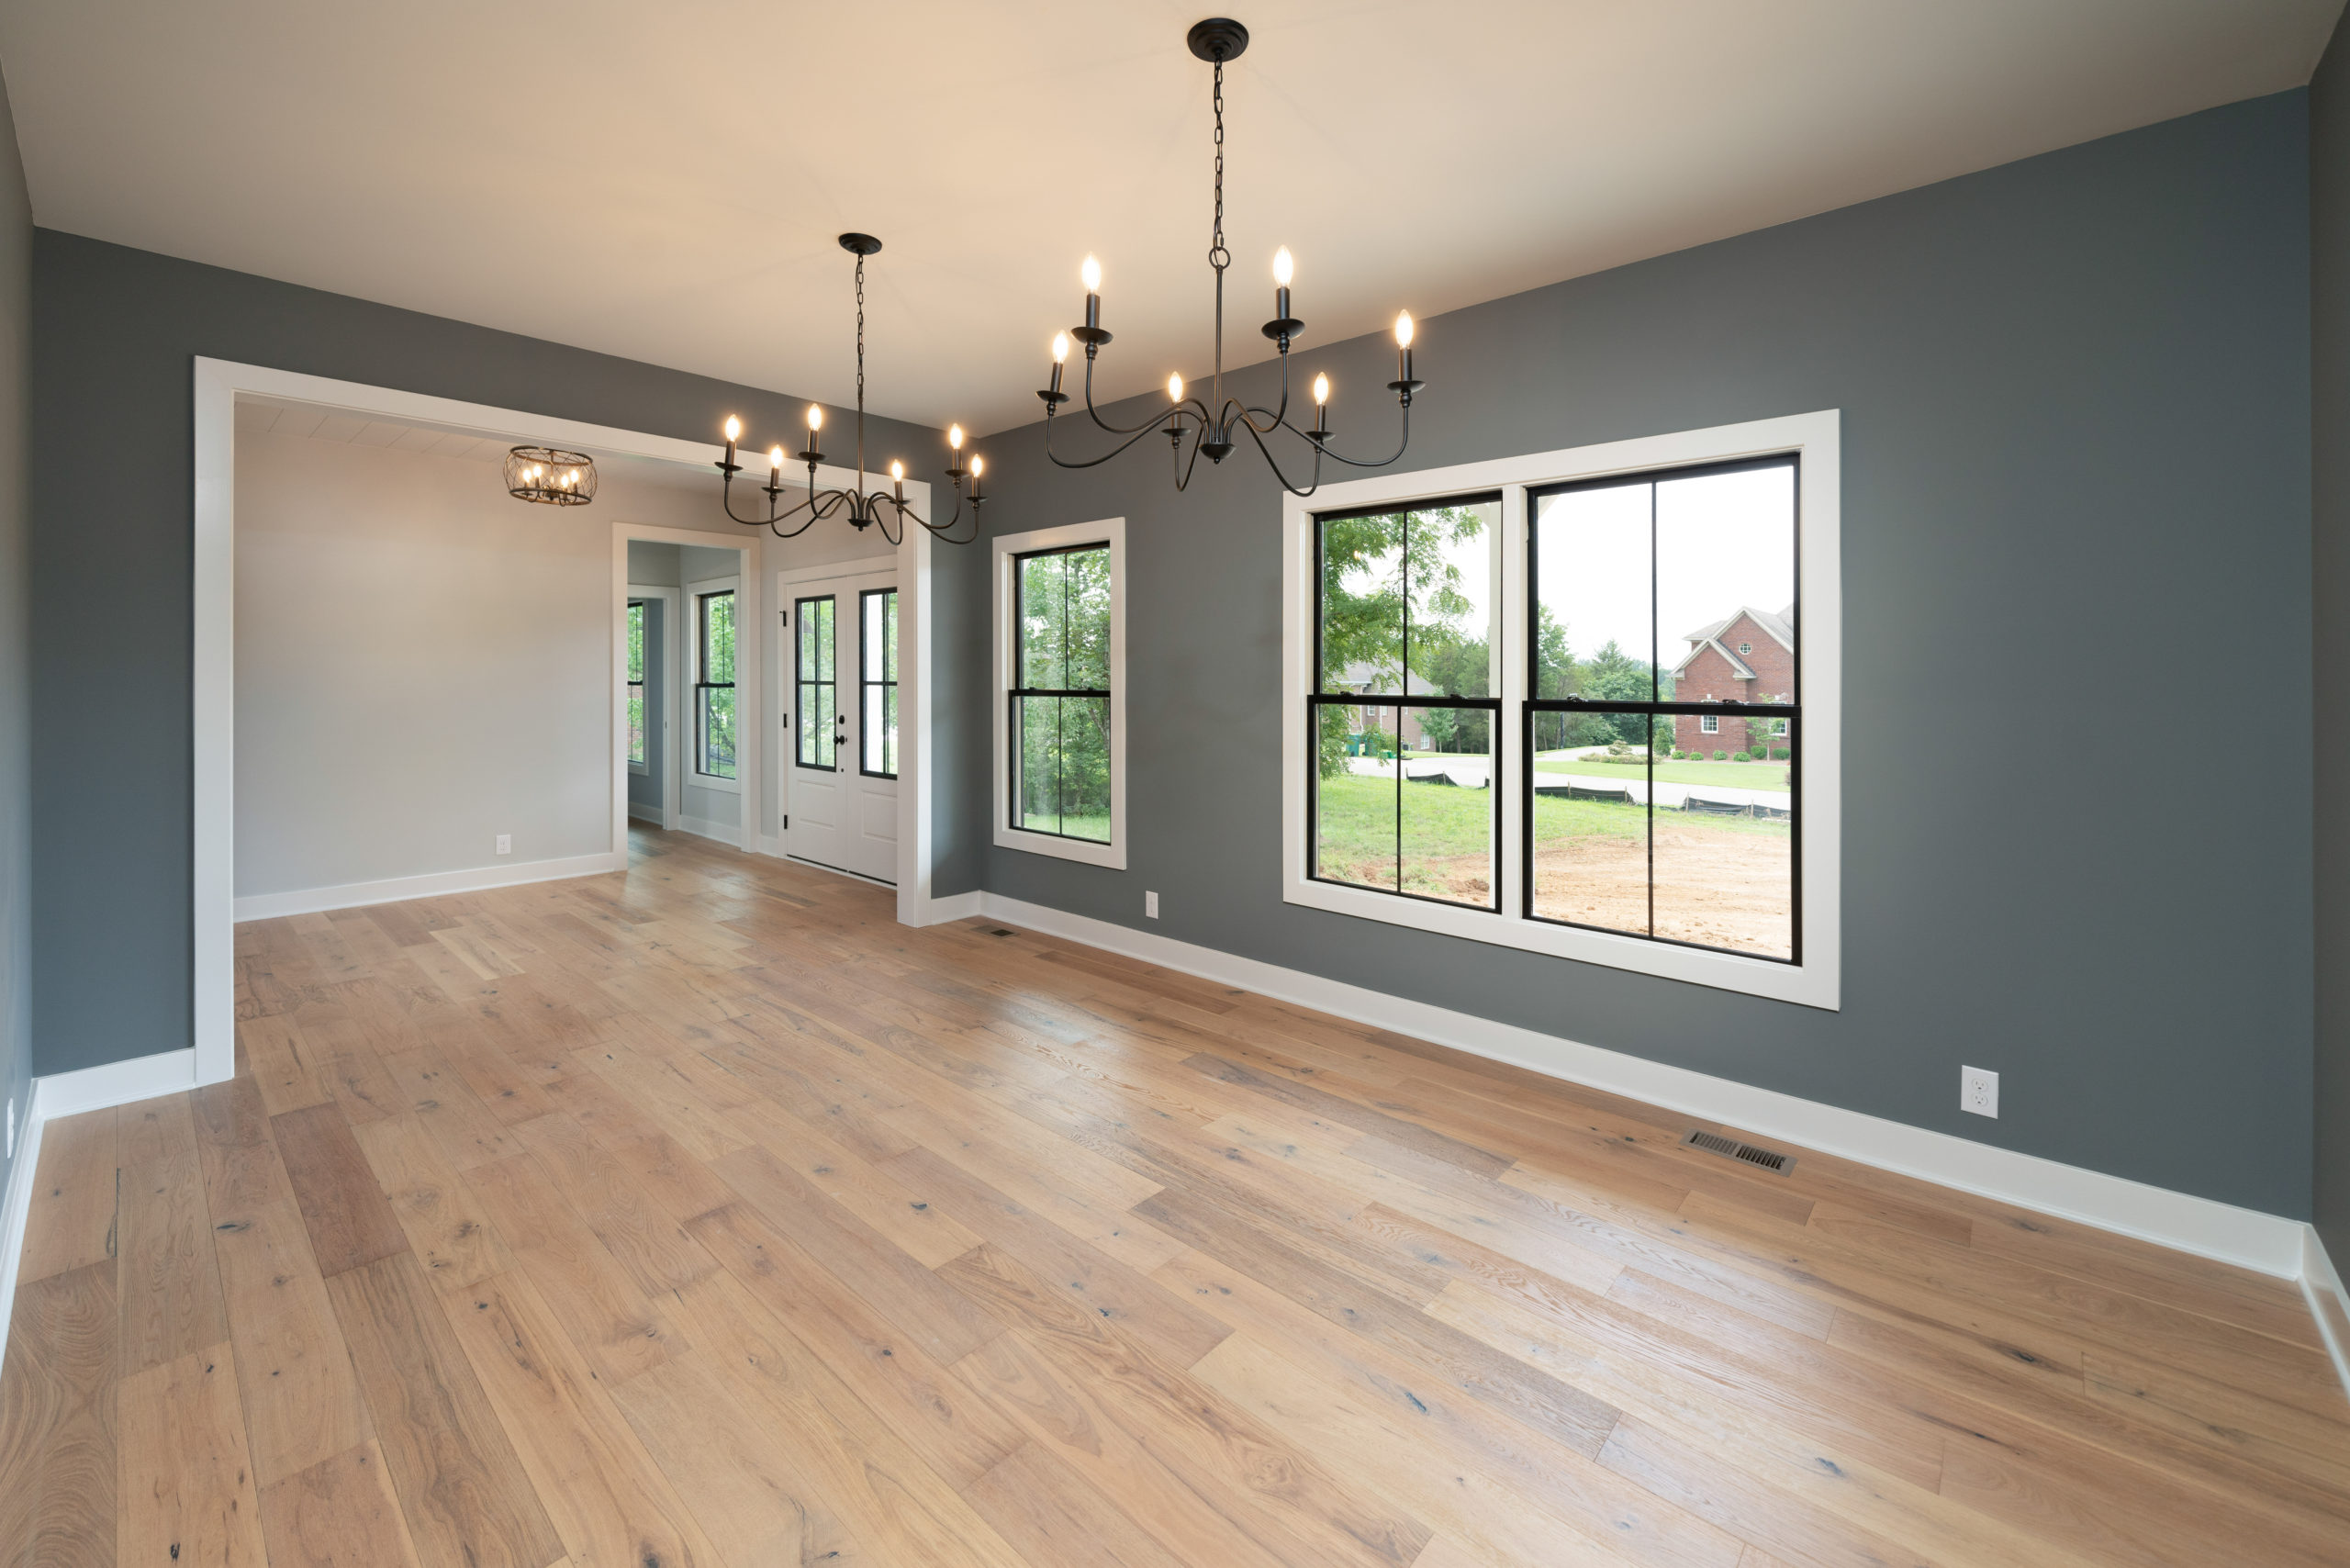 large formal dining room with two chandeliers